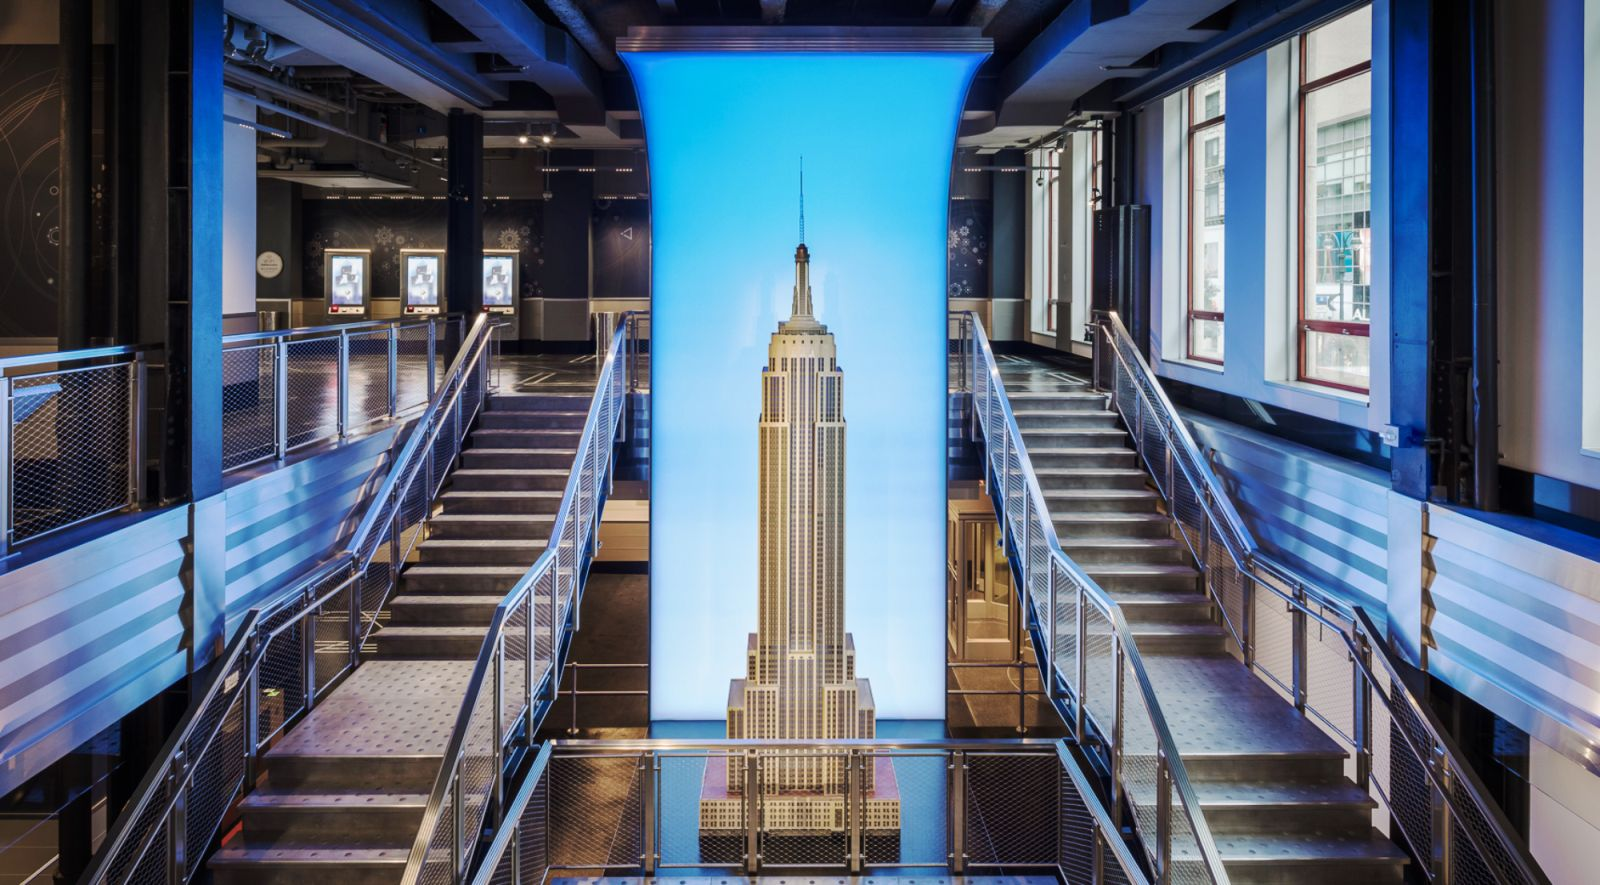 ESB New Entrance, Grand Lobby, and Staircase